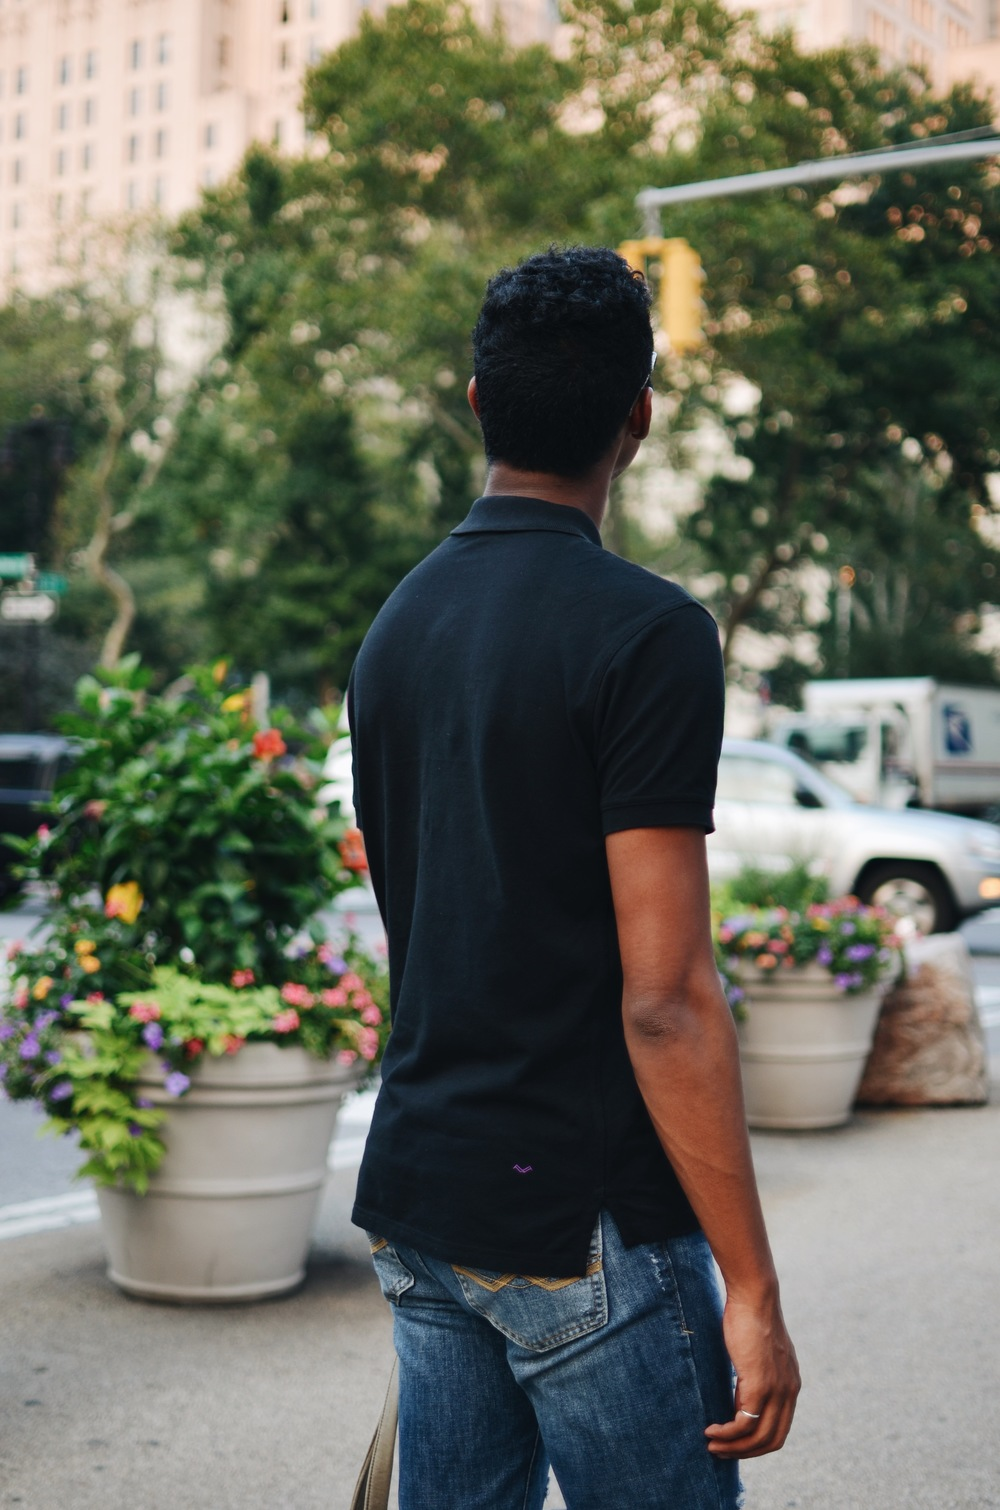 McLeod wearing #ThePerfectPolo in Black, by Feldspar Brook.  August, NYC.  Photos courtesy of the blogger/designer